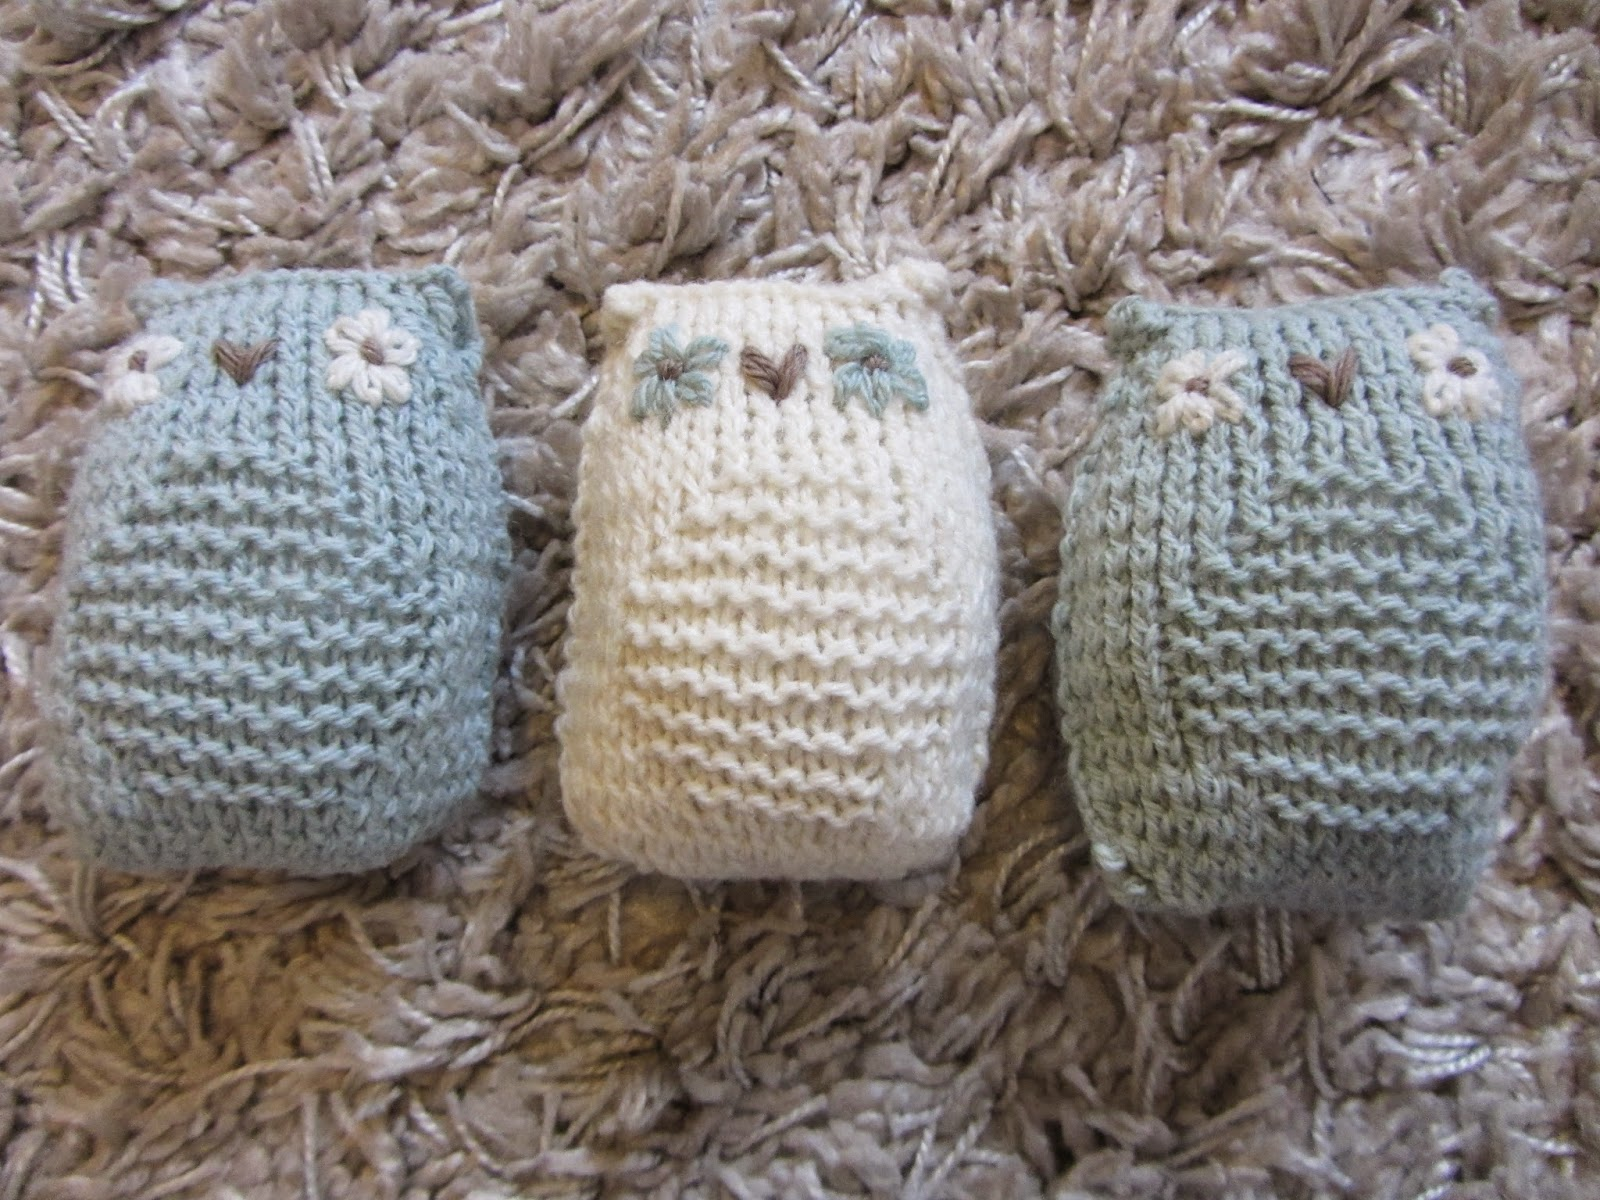 The Bumbling Bee: Knitted owl lavender bags (and a Merry Christmas!)...